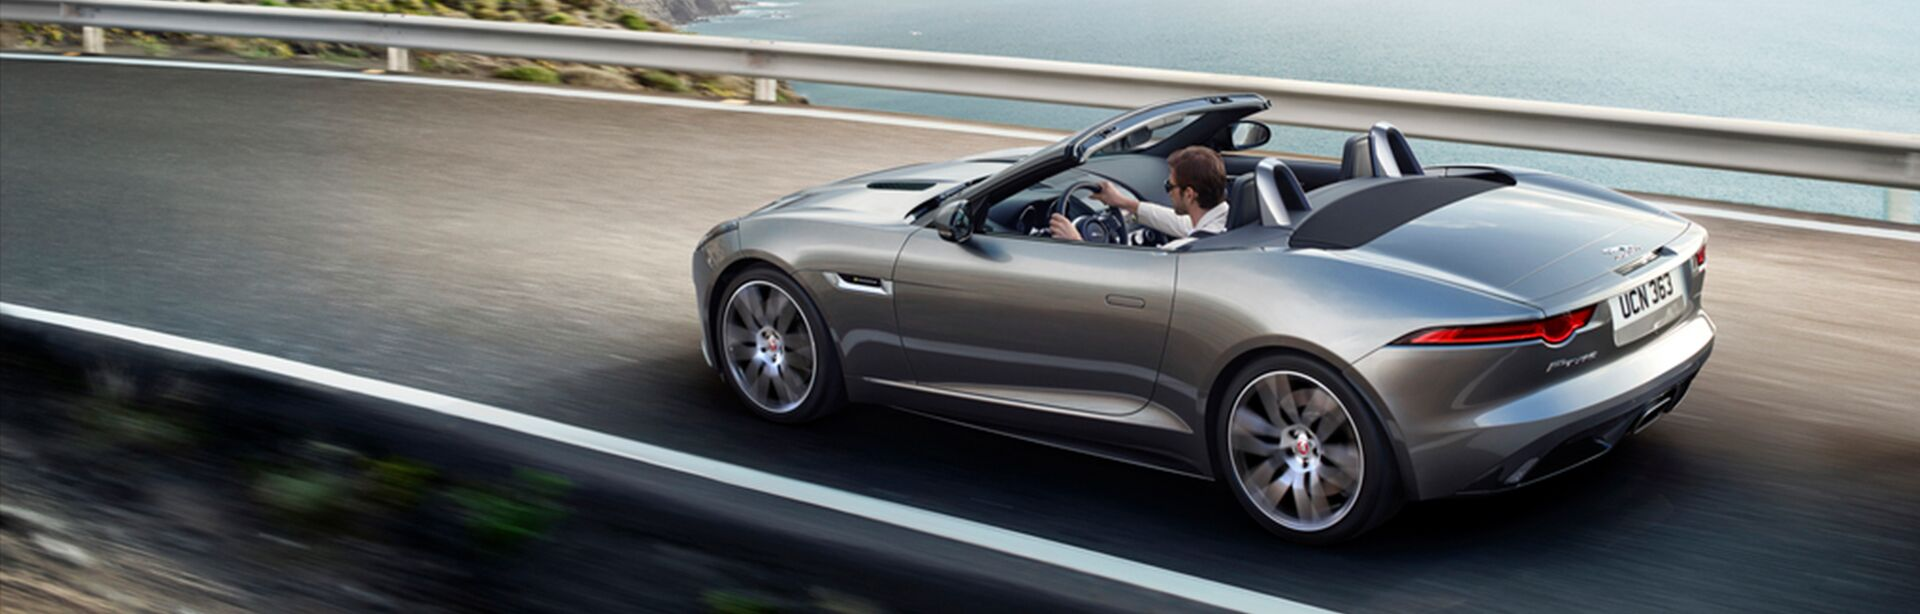 2020 Jaguar F-TYPE Convertible Auto P300